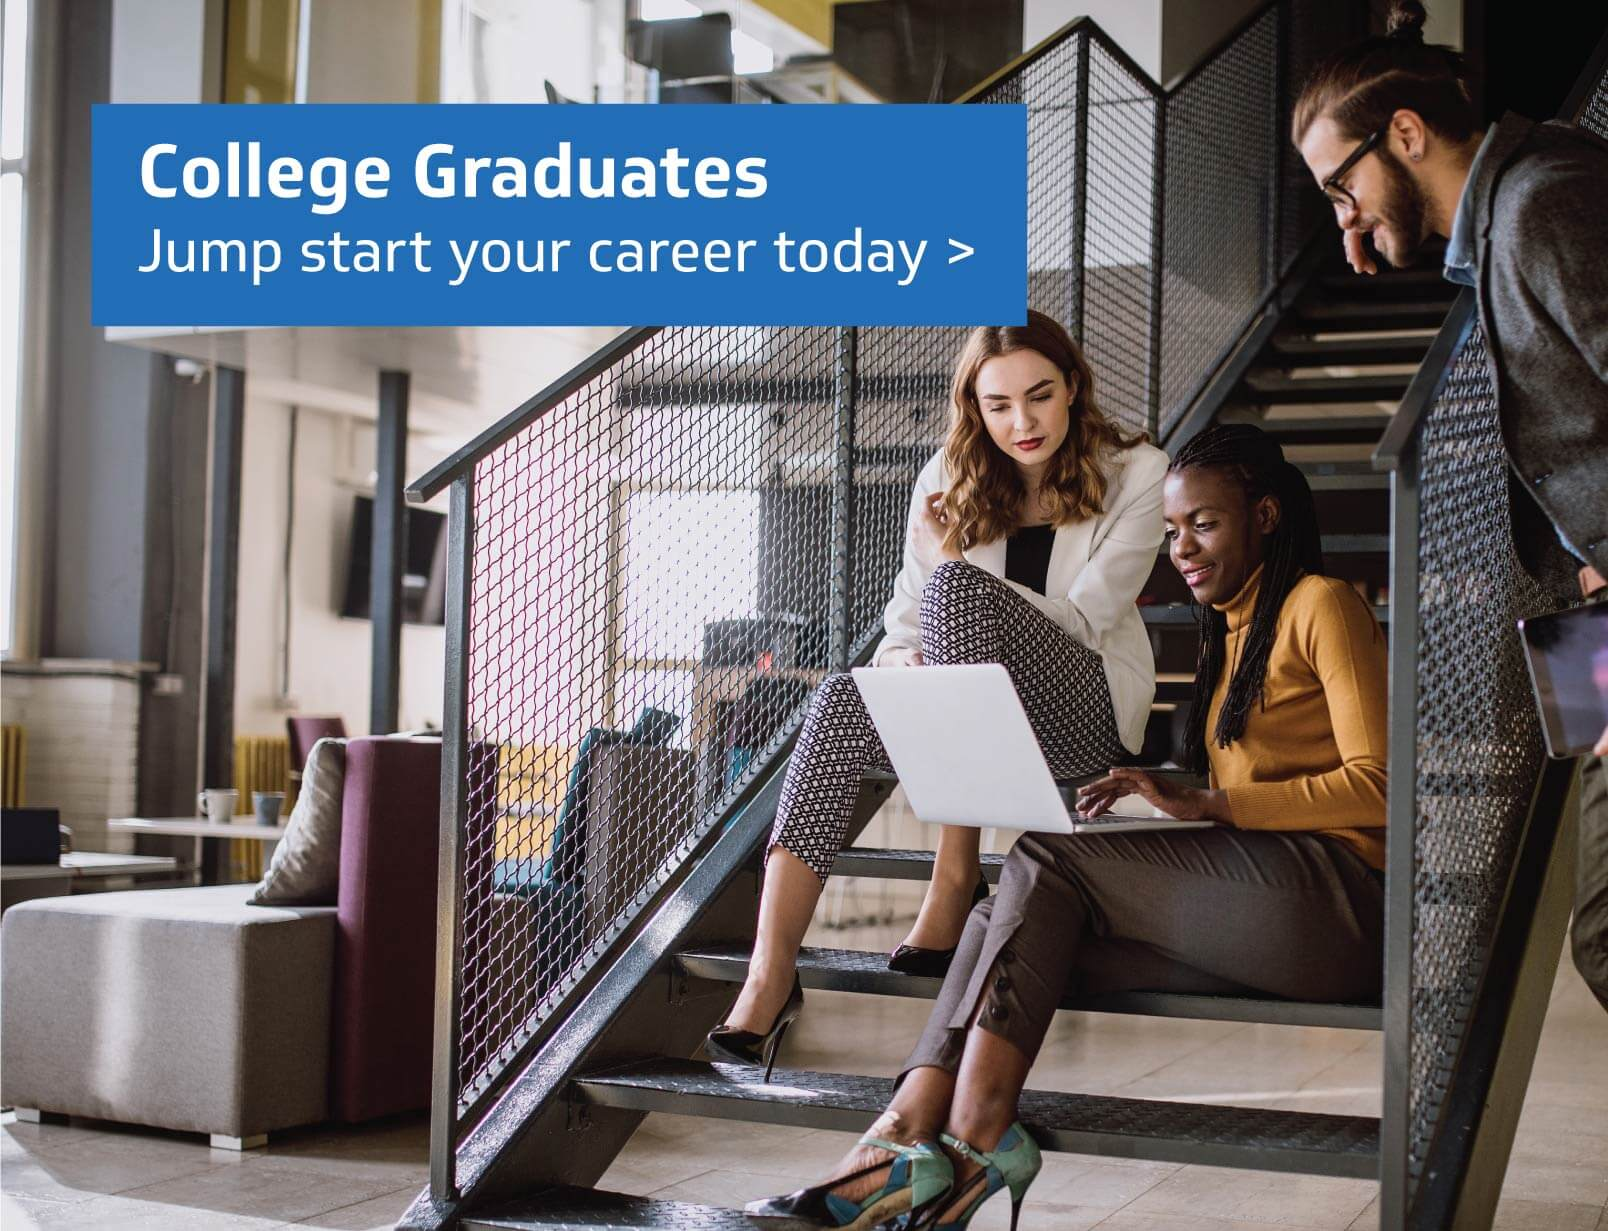 Careers for College Graduates